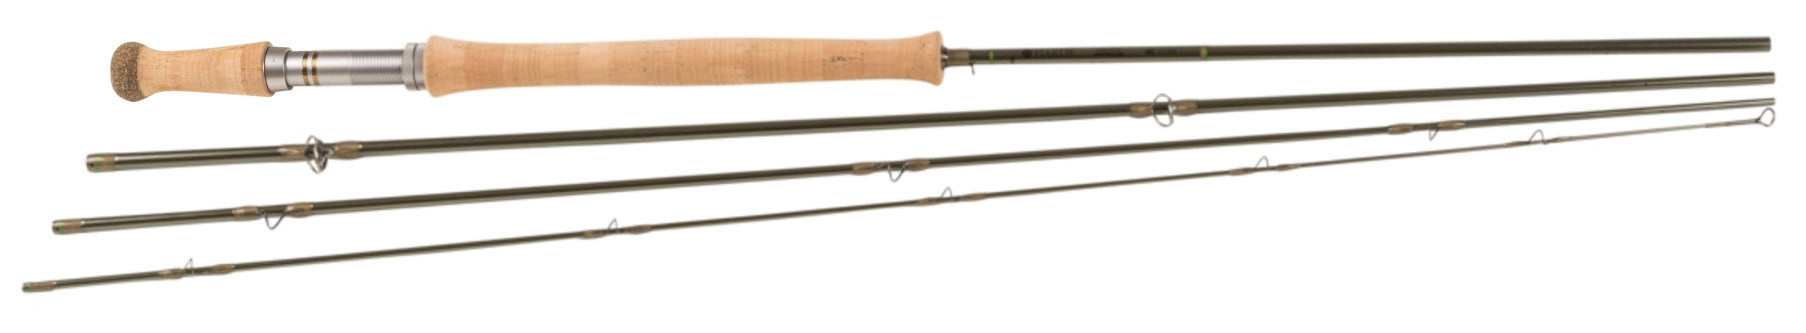 Hardy Demon Sintrix Double Hander Fly Rods